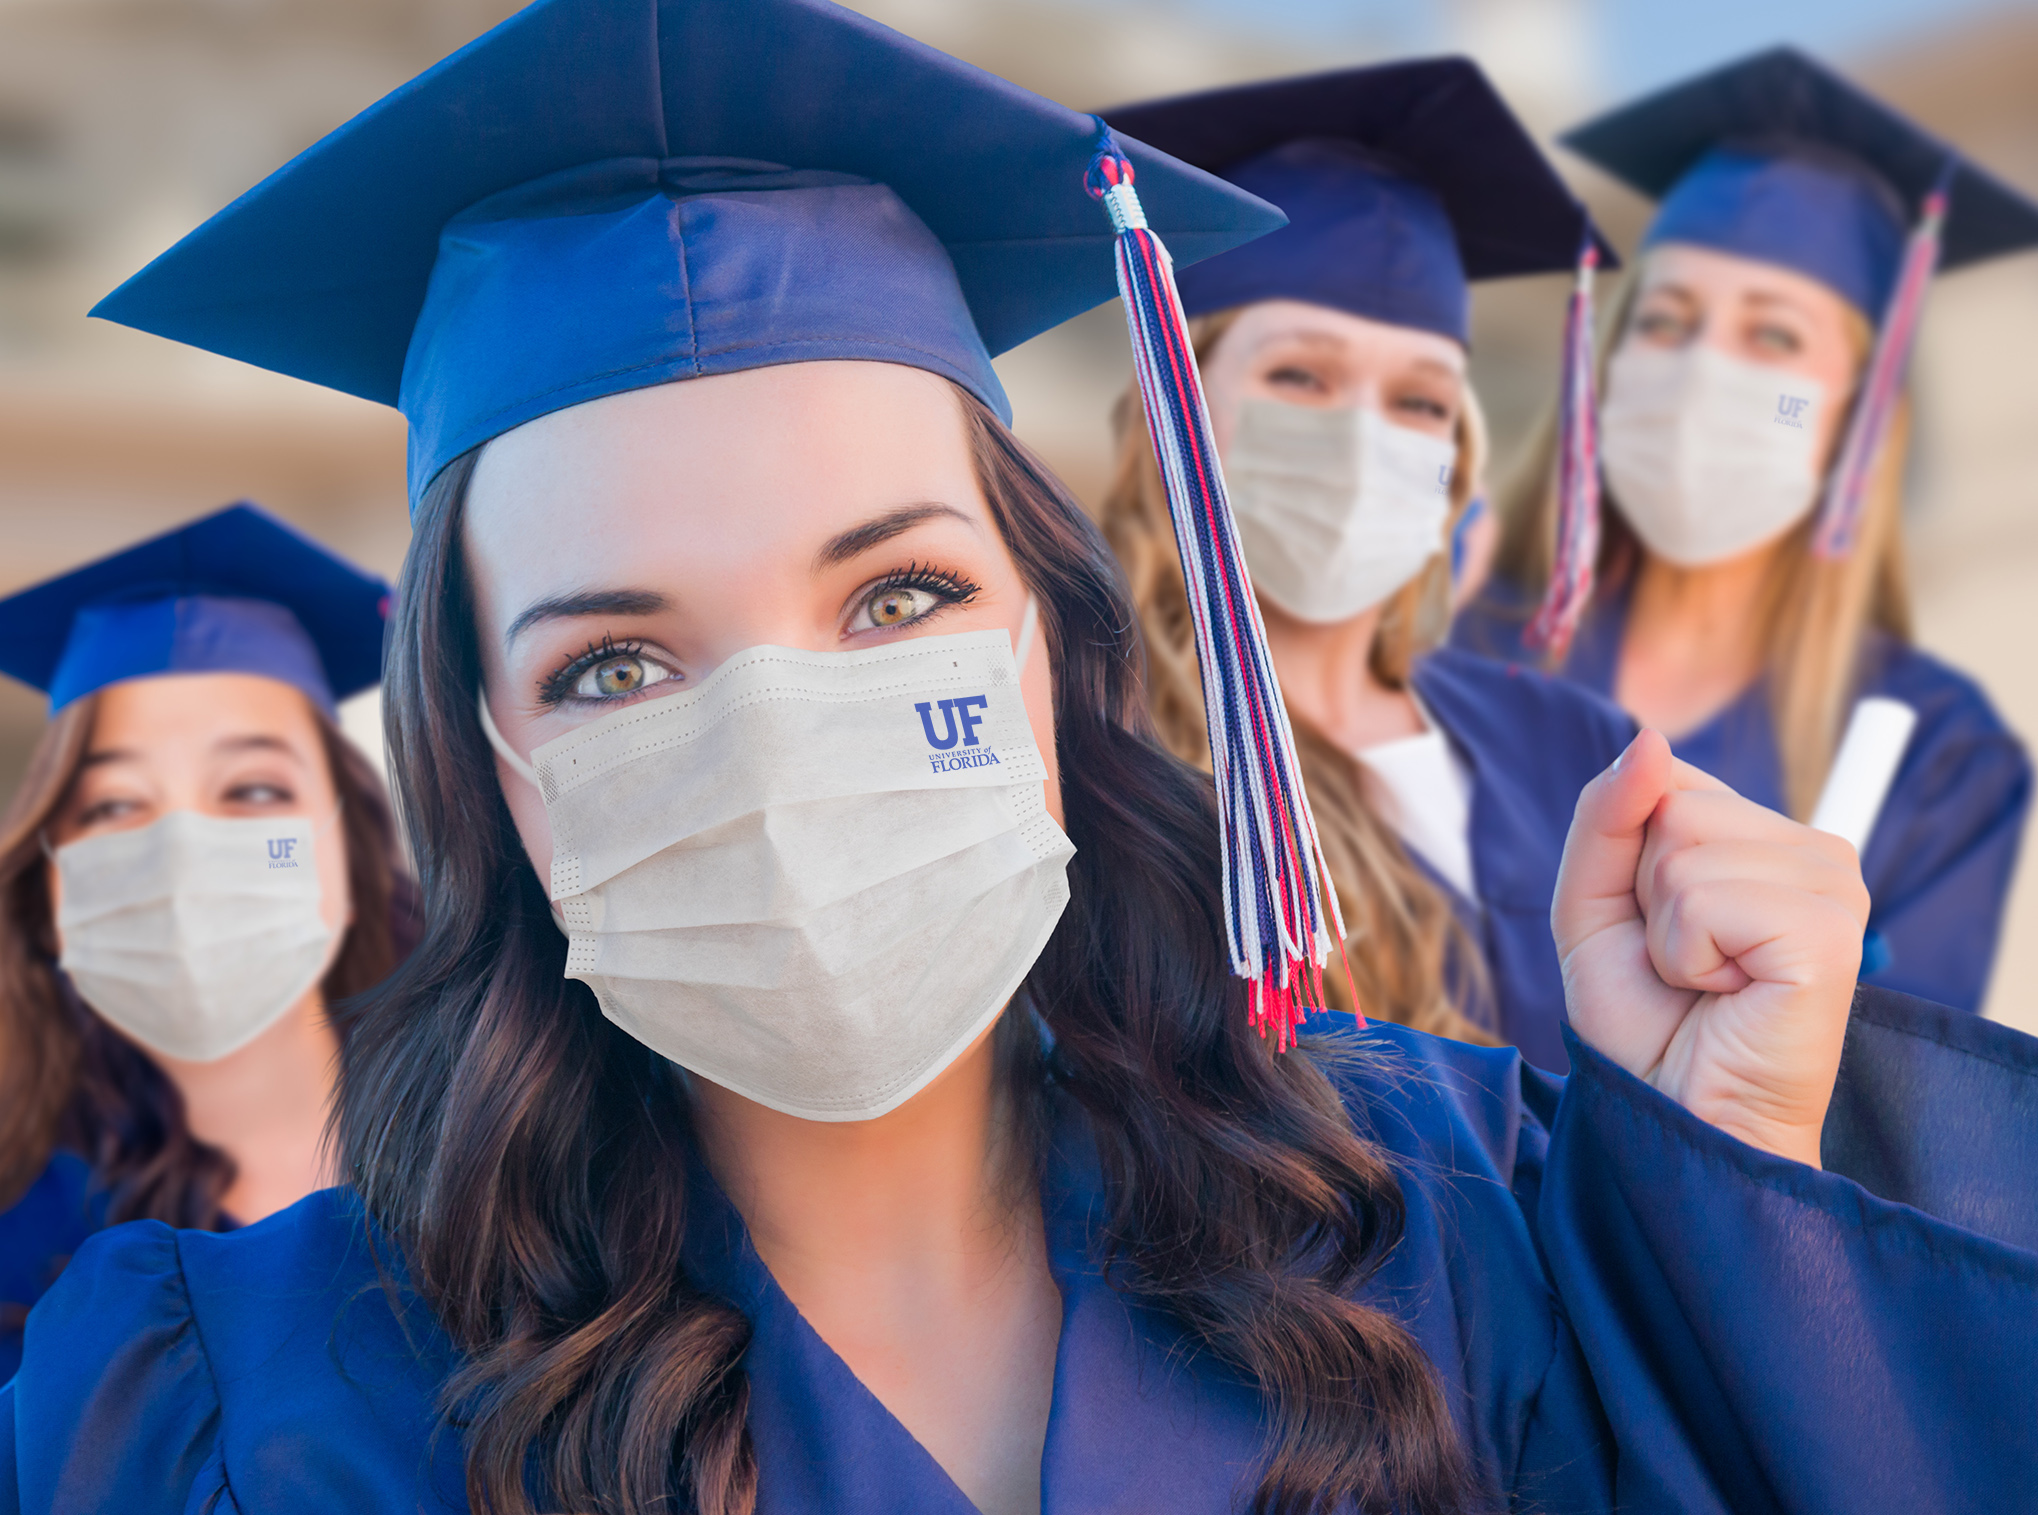 surgical-masks-usa-israel-covid-19-virus-pandemic-mask-custom-logo-printing-students-university-college